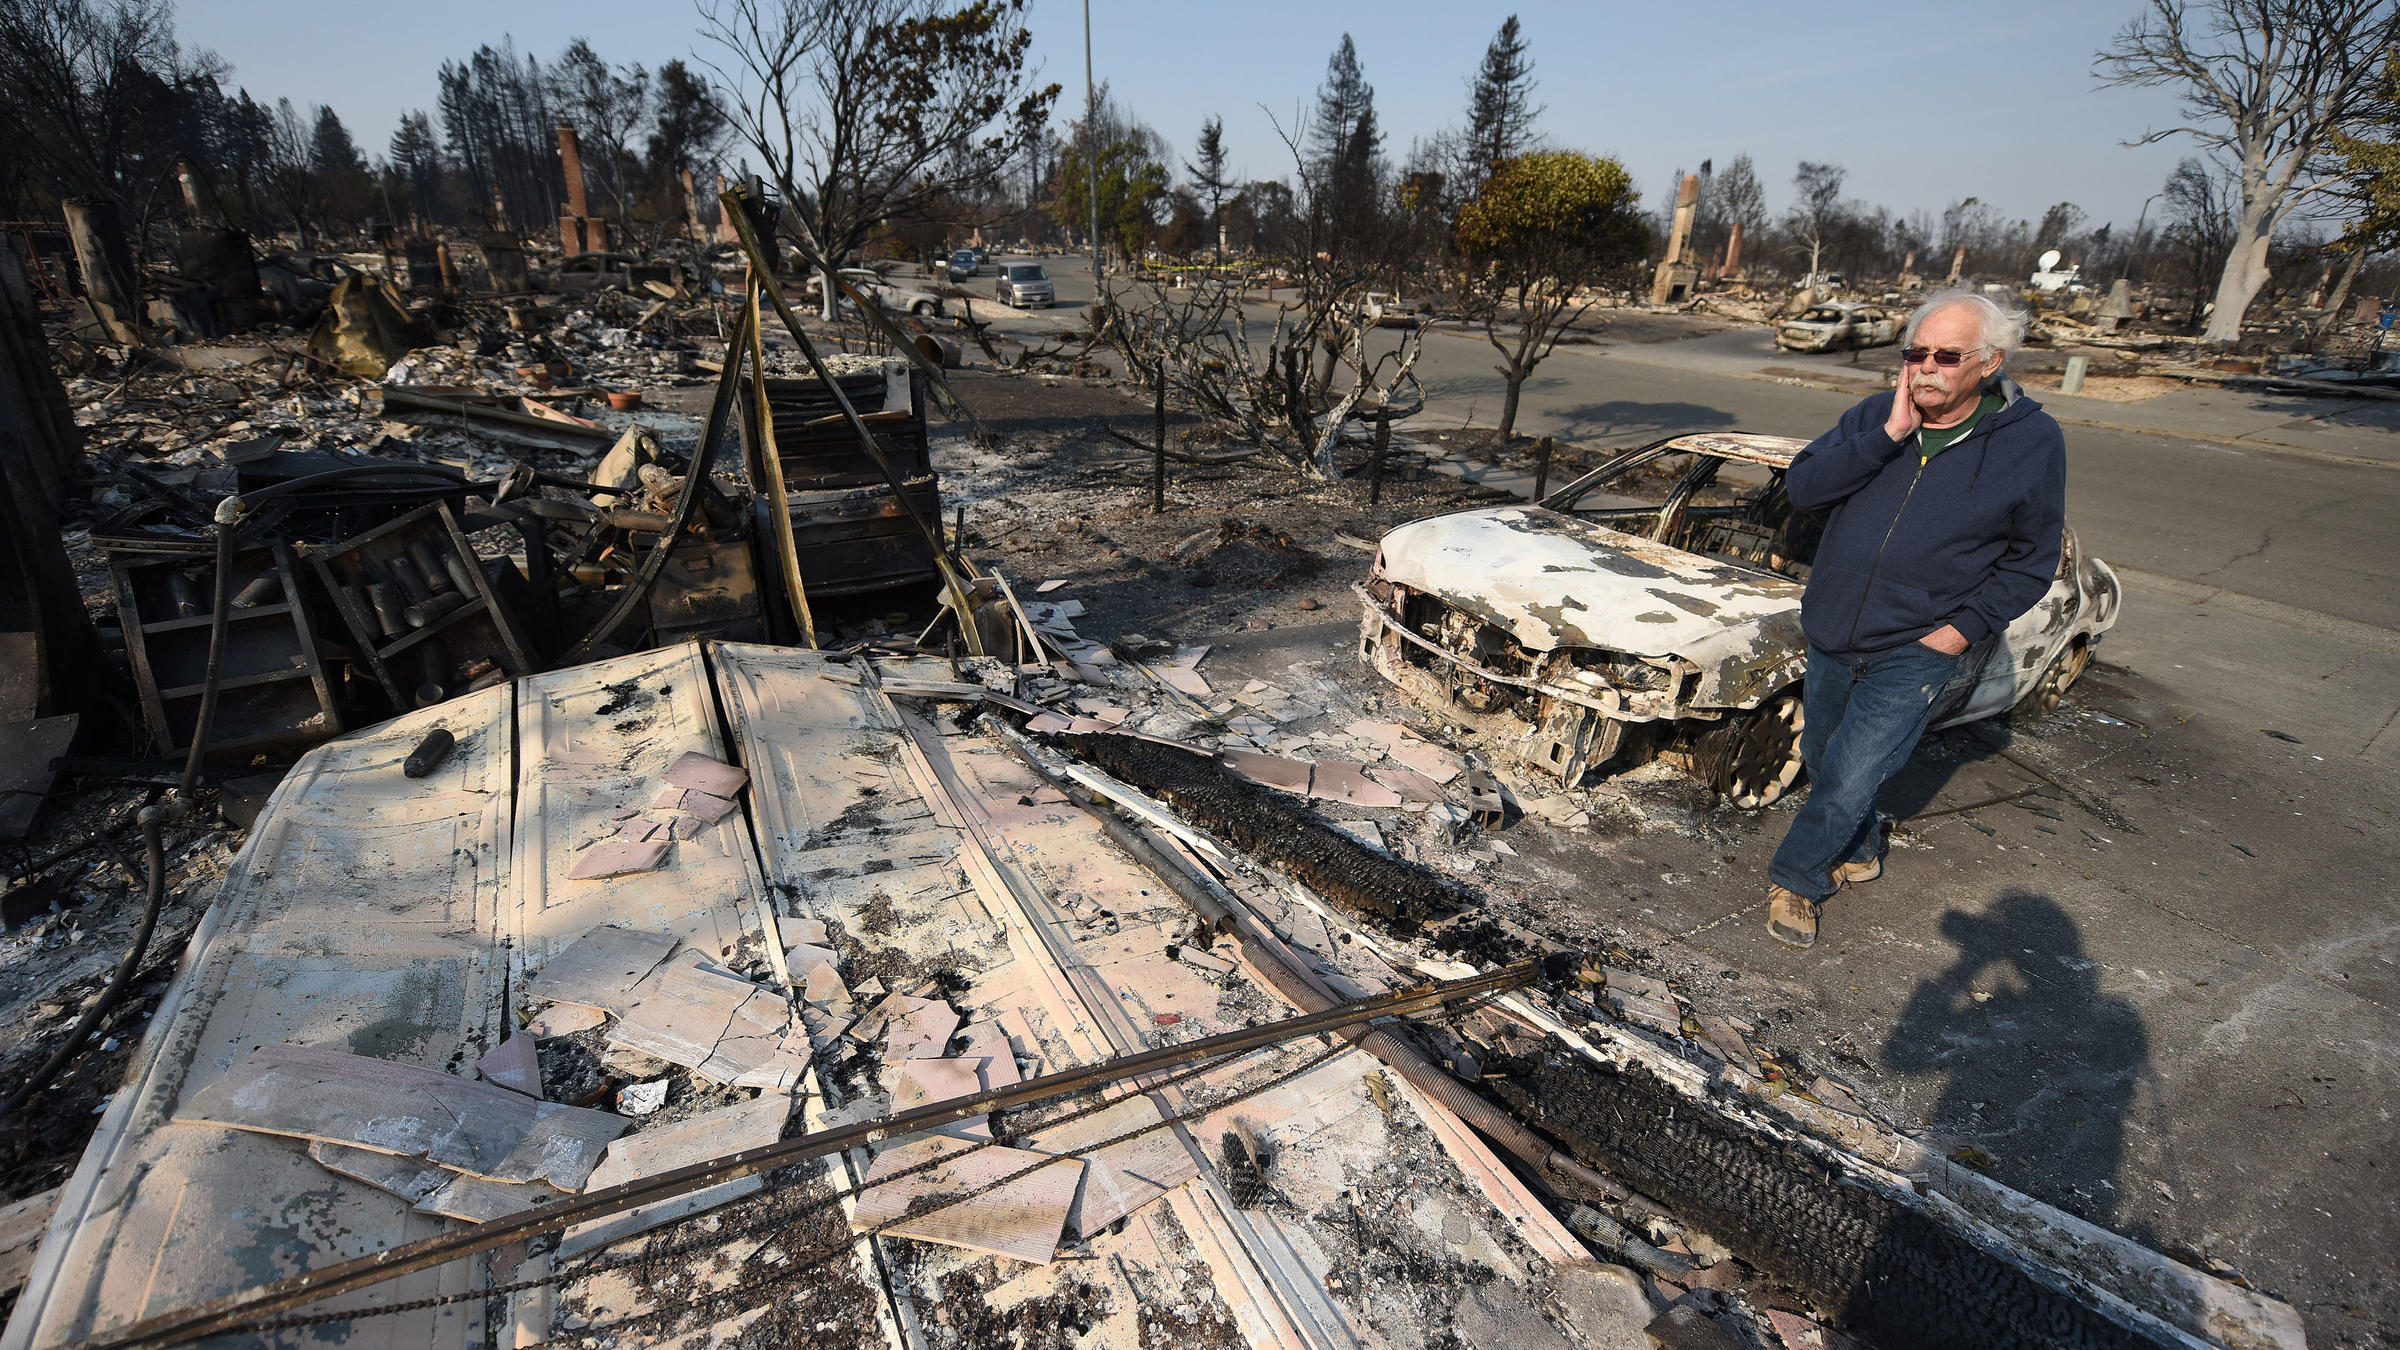 Firefighters still unable to control the fire in Northern California